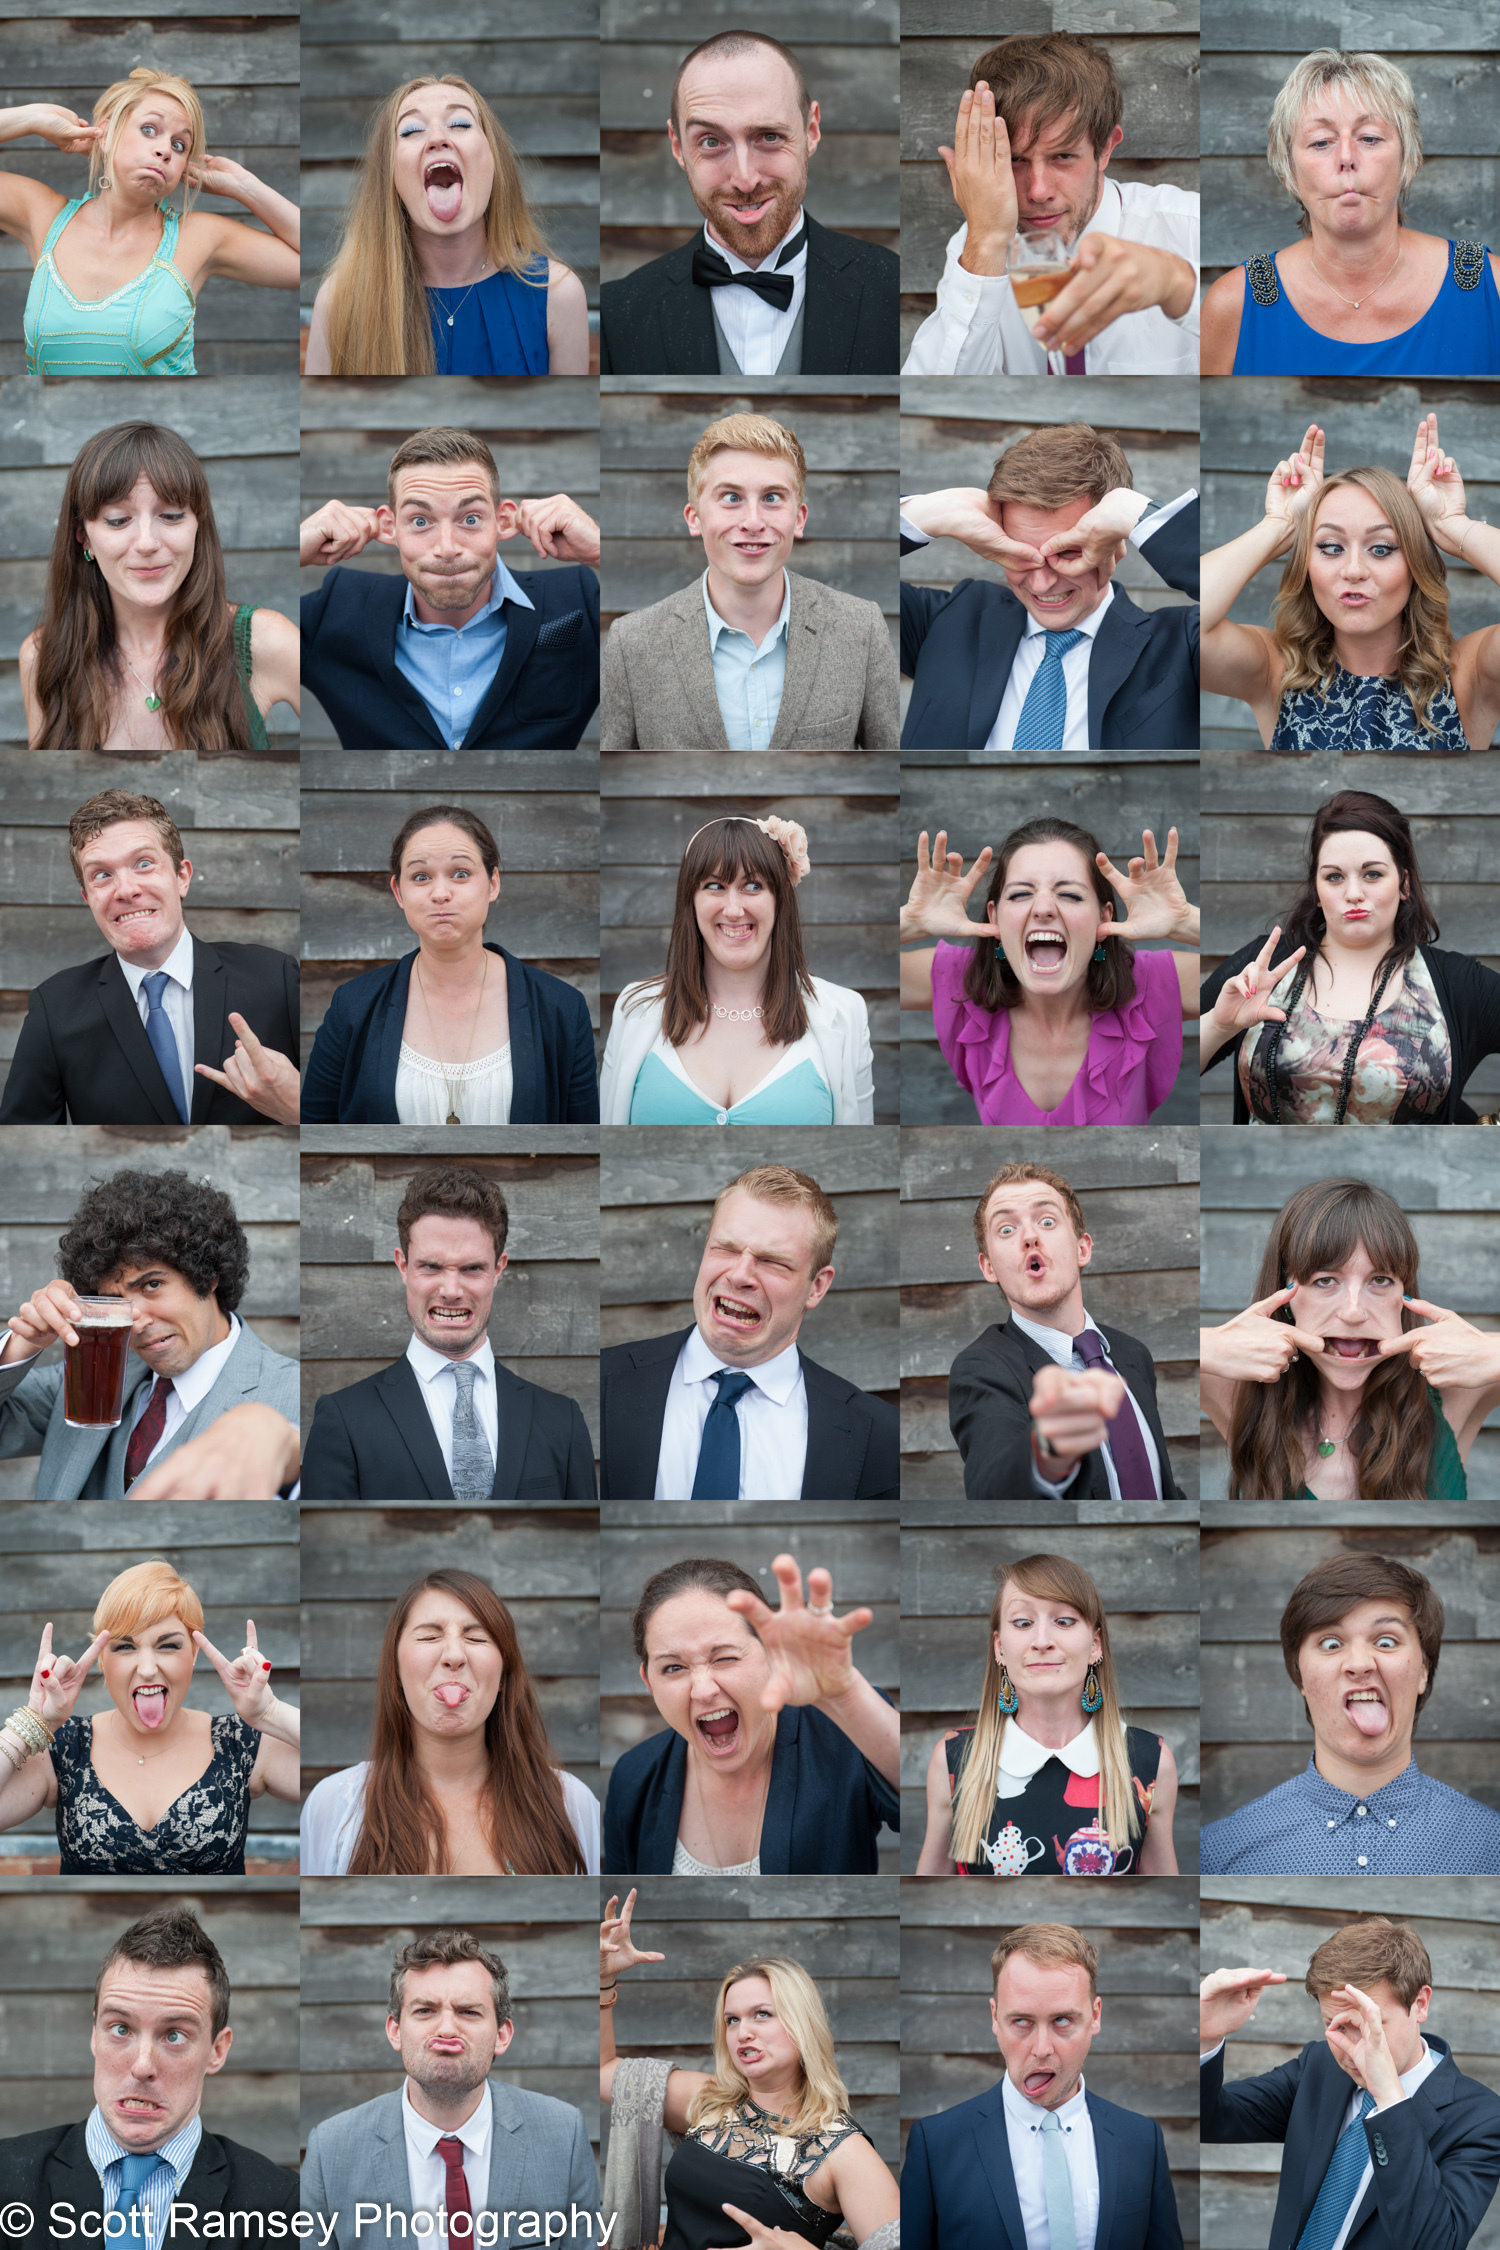 Fun Creative Quirky Surrey Wedding Photography by Scott Ramsey Photography. Get your guests to pull funny faces or strike a silly pose to create some fun wedding photographs.